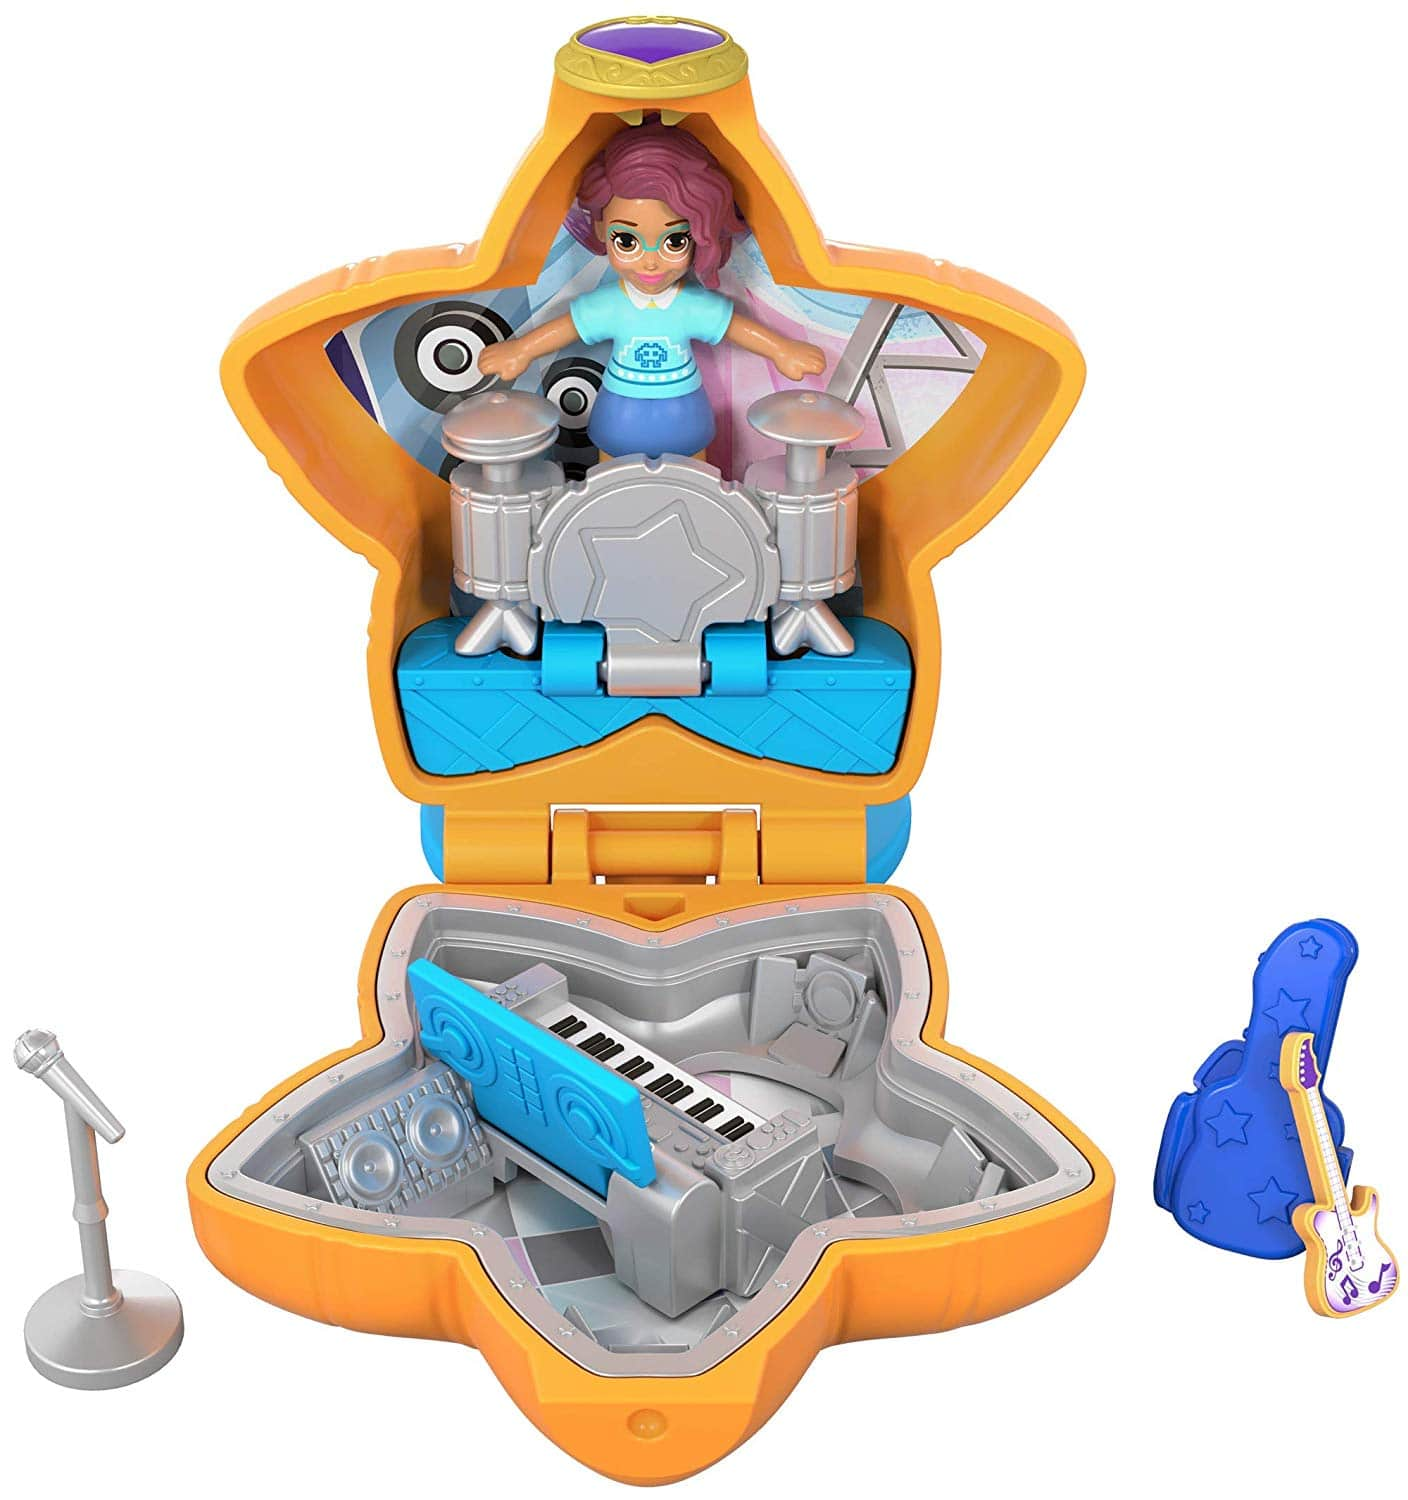 Polly Pocket Tiny Pocket World (Shani) $2.50 - Amazon